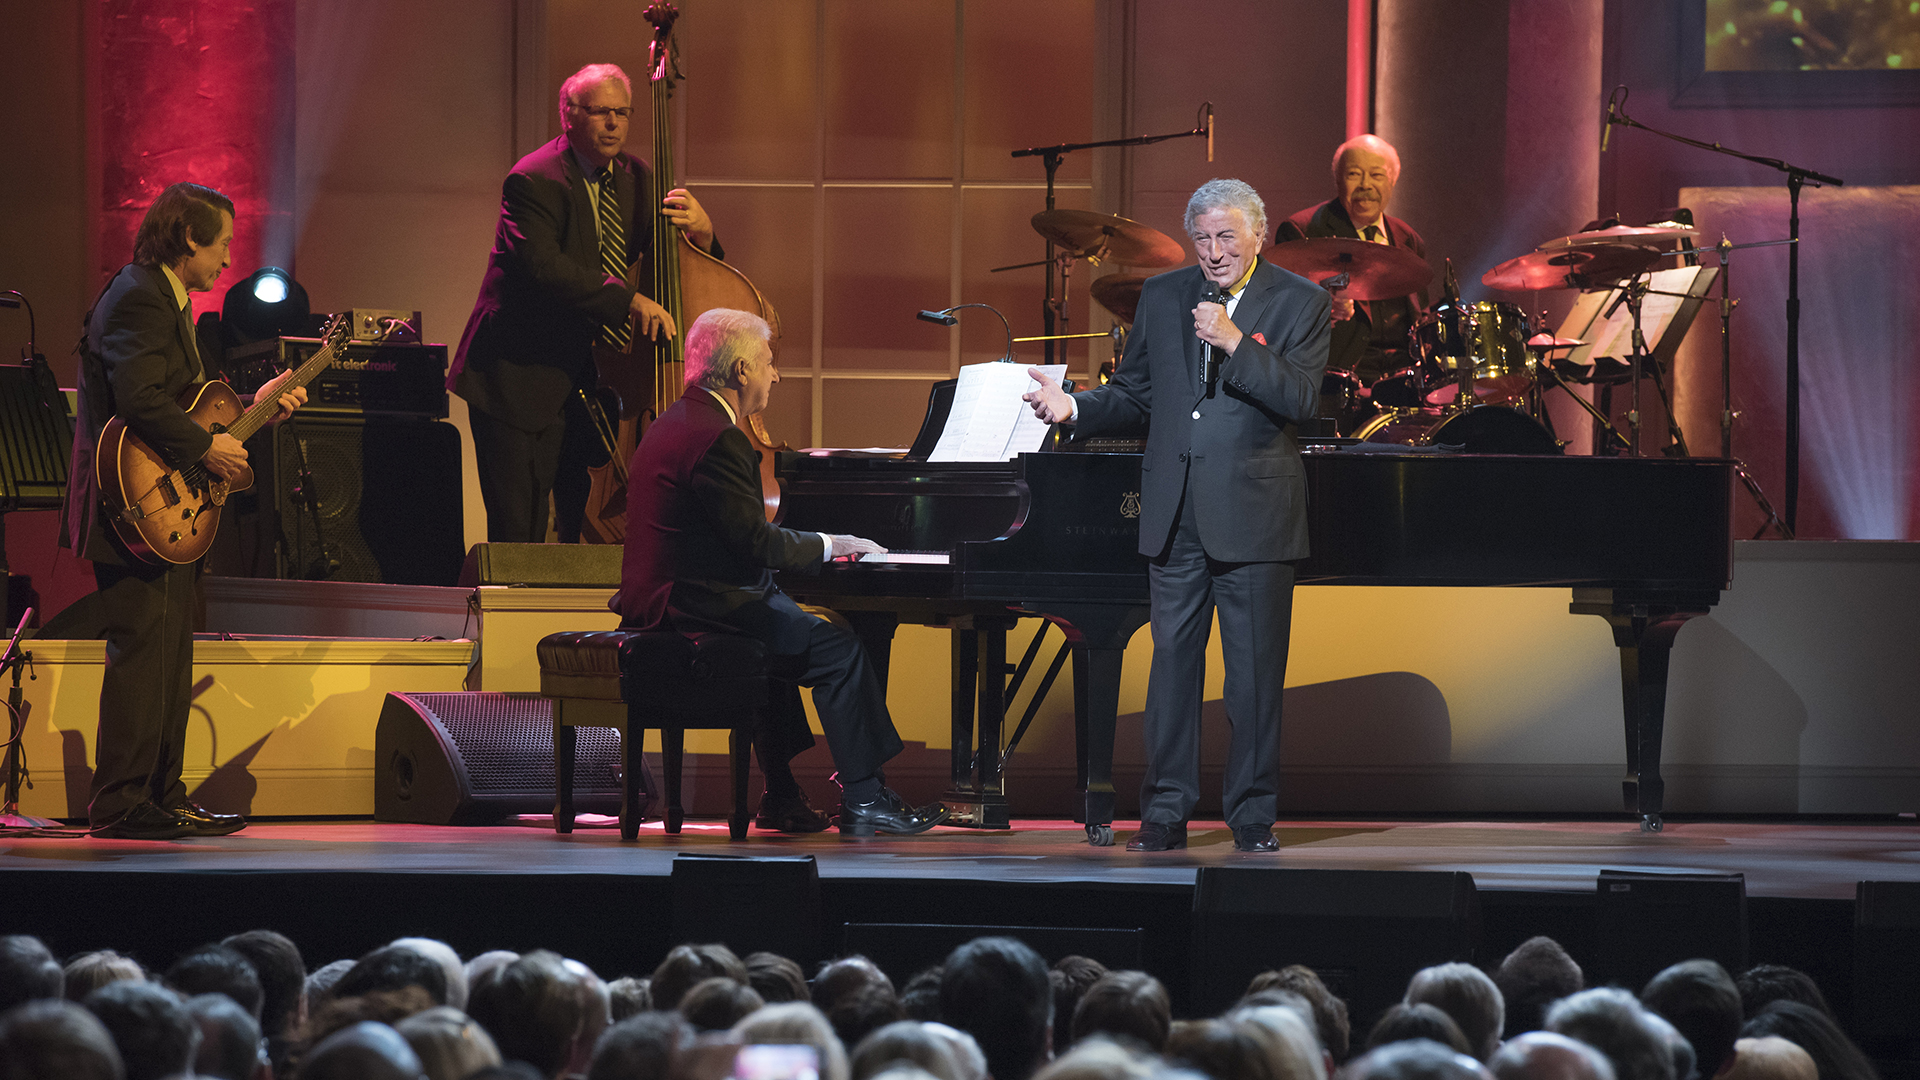 Iconic crooner Tony Bennett honored with Gershwin Prize in PBS special